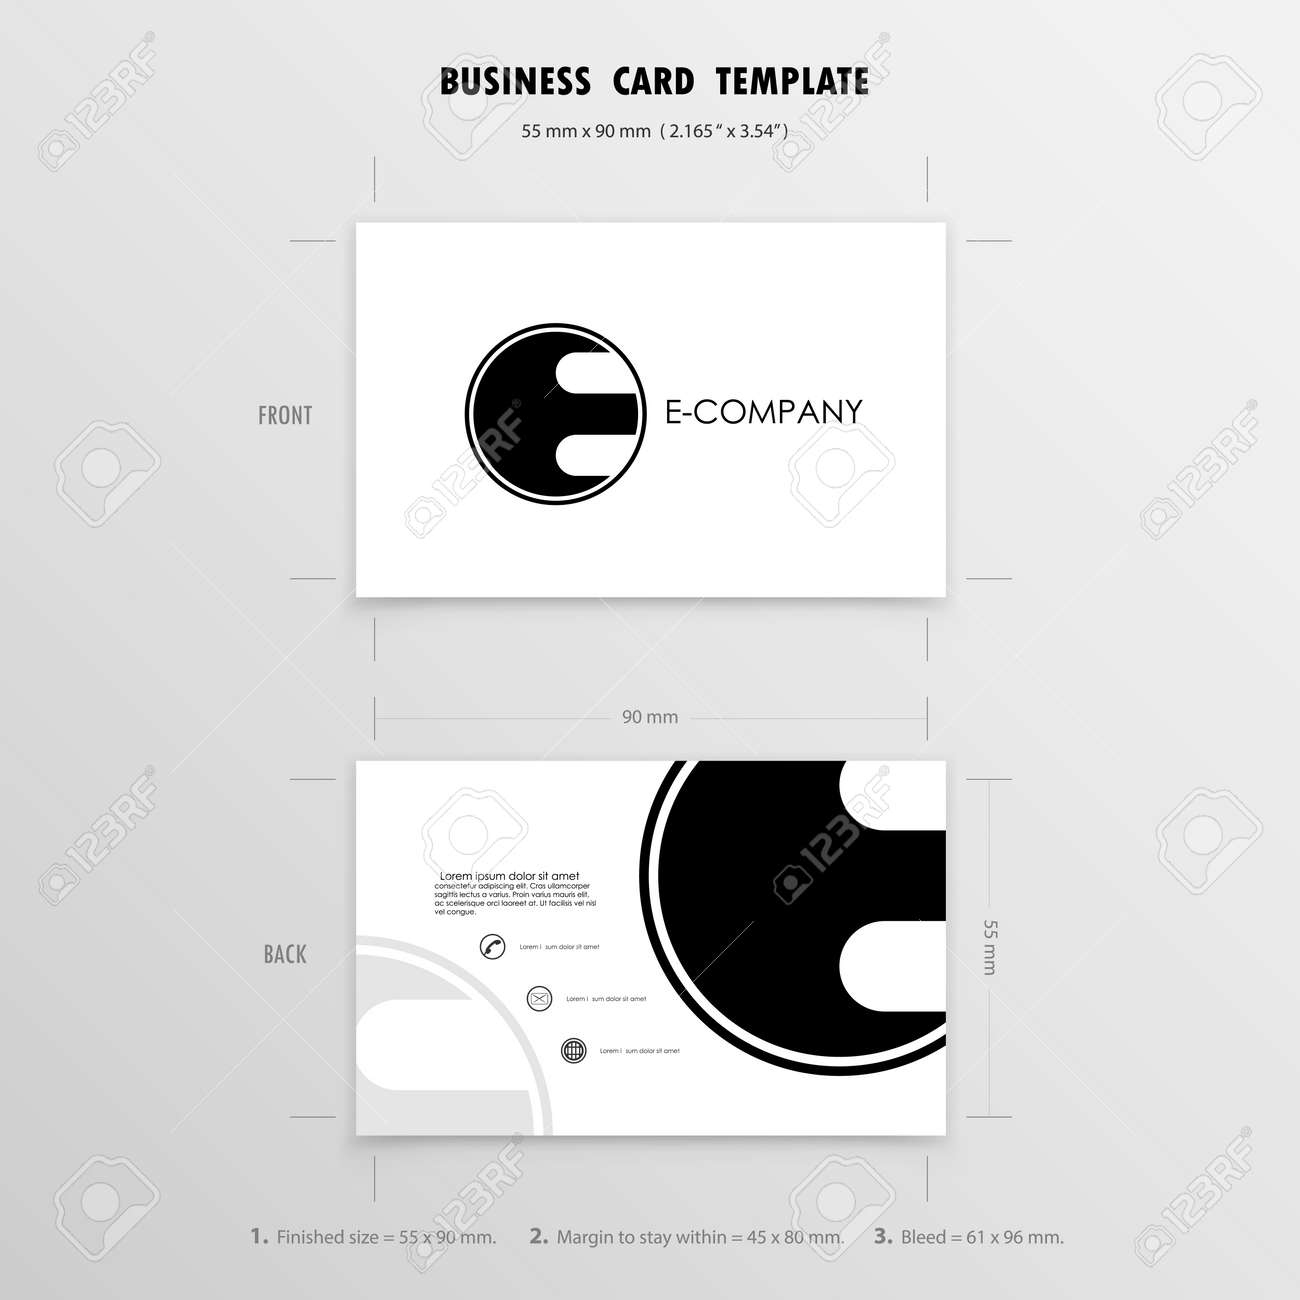 Business cards design template name cards symbol size 55 mm x 90 banco de imagens business cards design template name cards symbol size 55 mm x 90 mm 2165 in x 354 inctor illustration reheart Choice Image